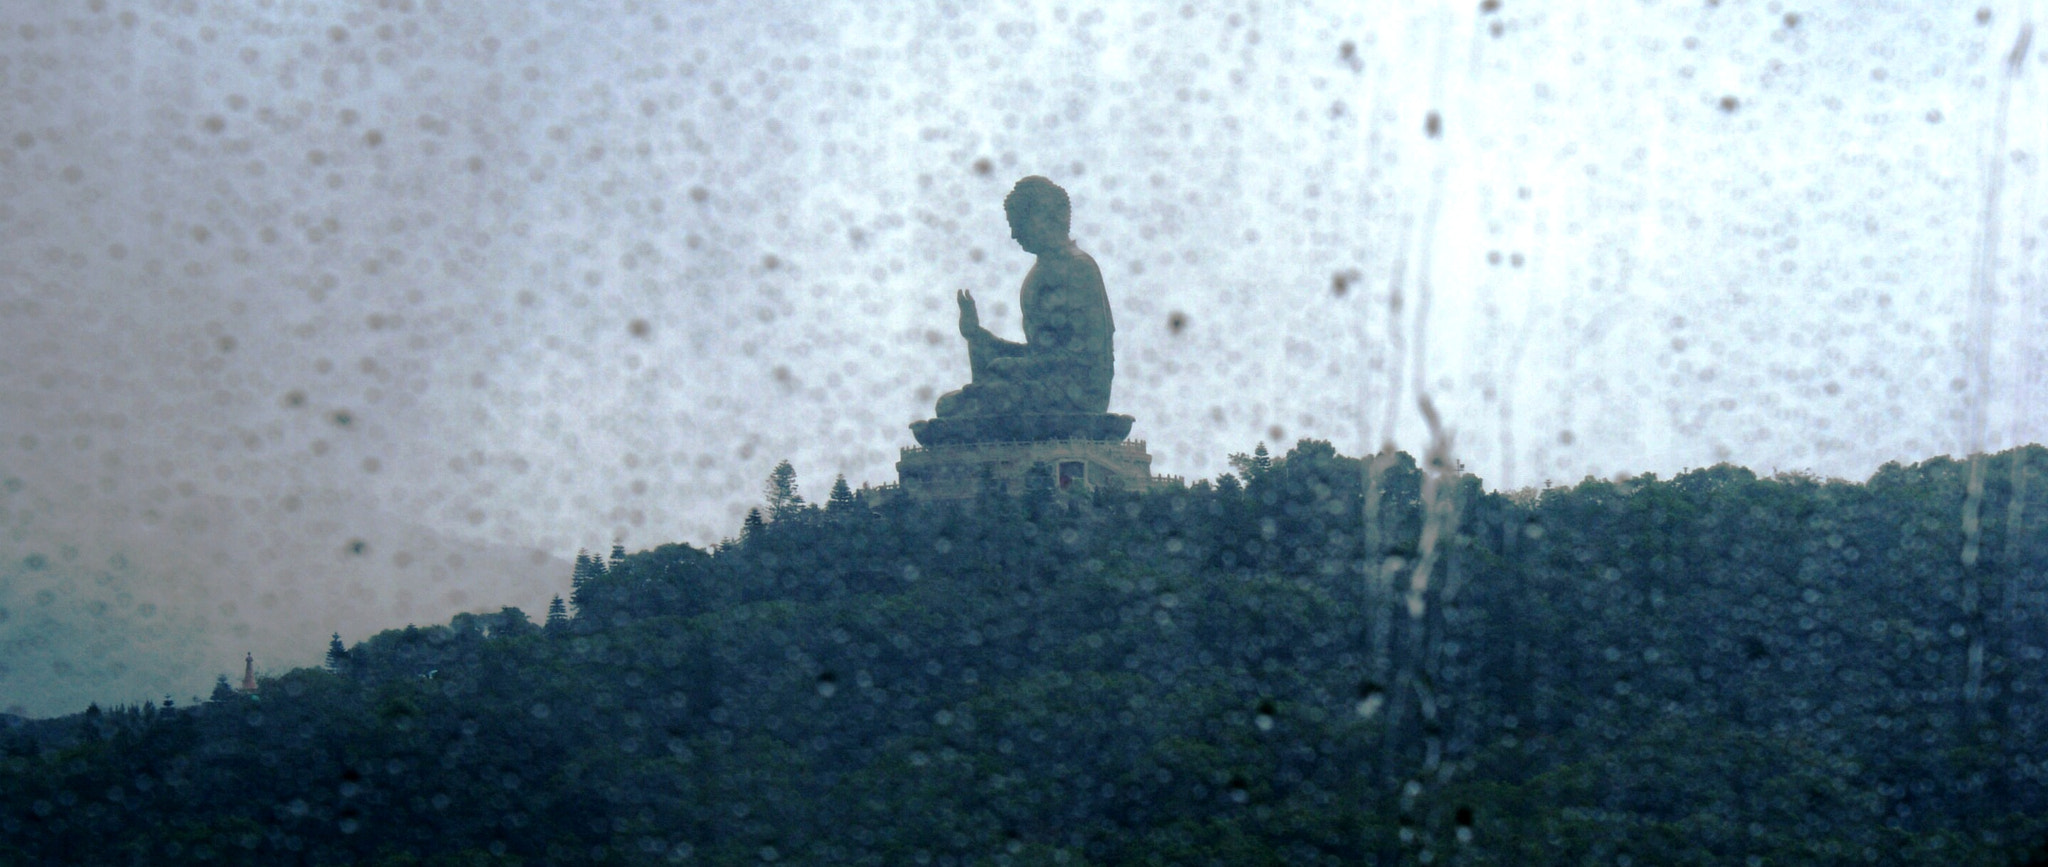 Photograph Crying Budha by Sawssan Ta on 500px